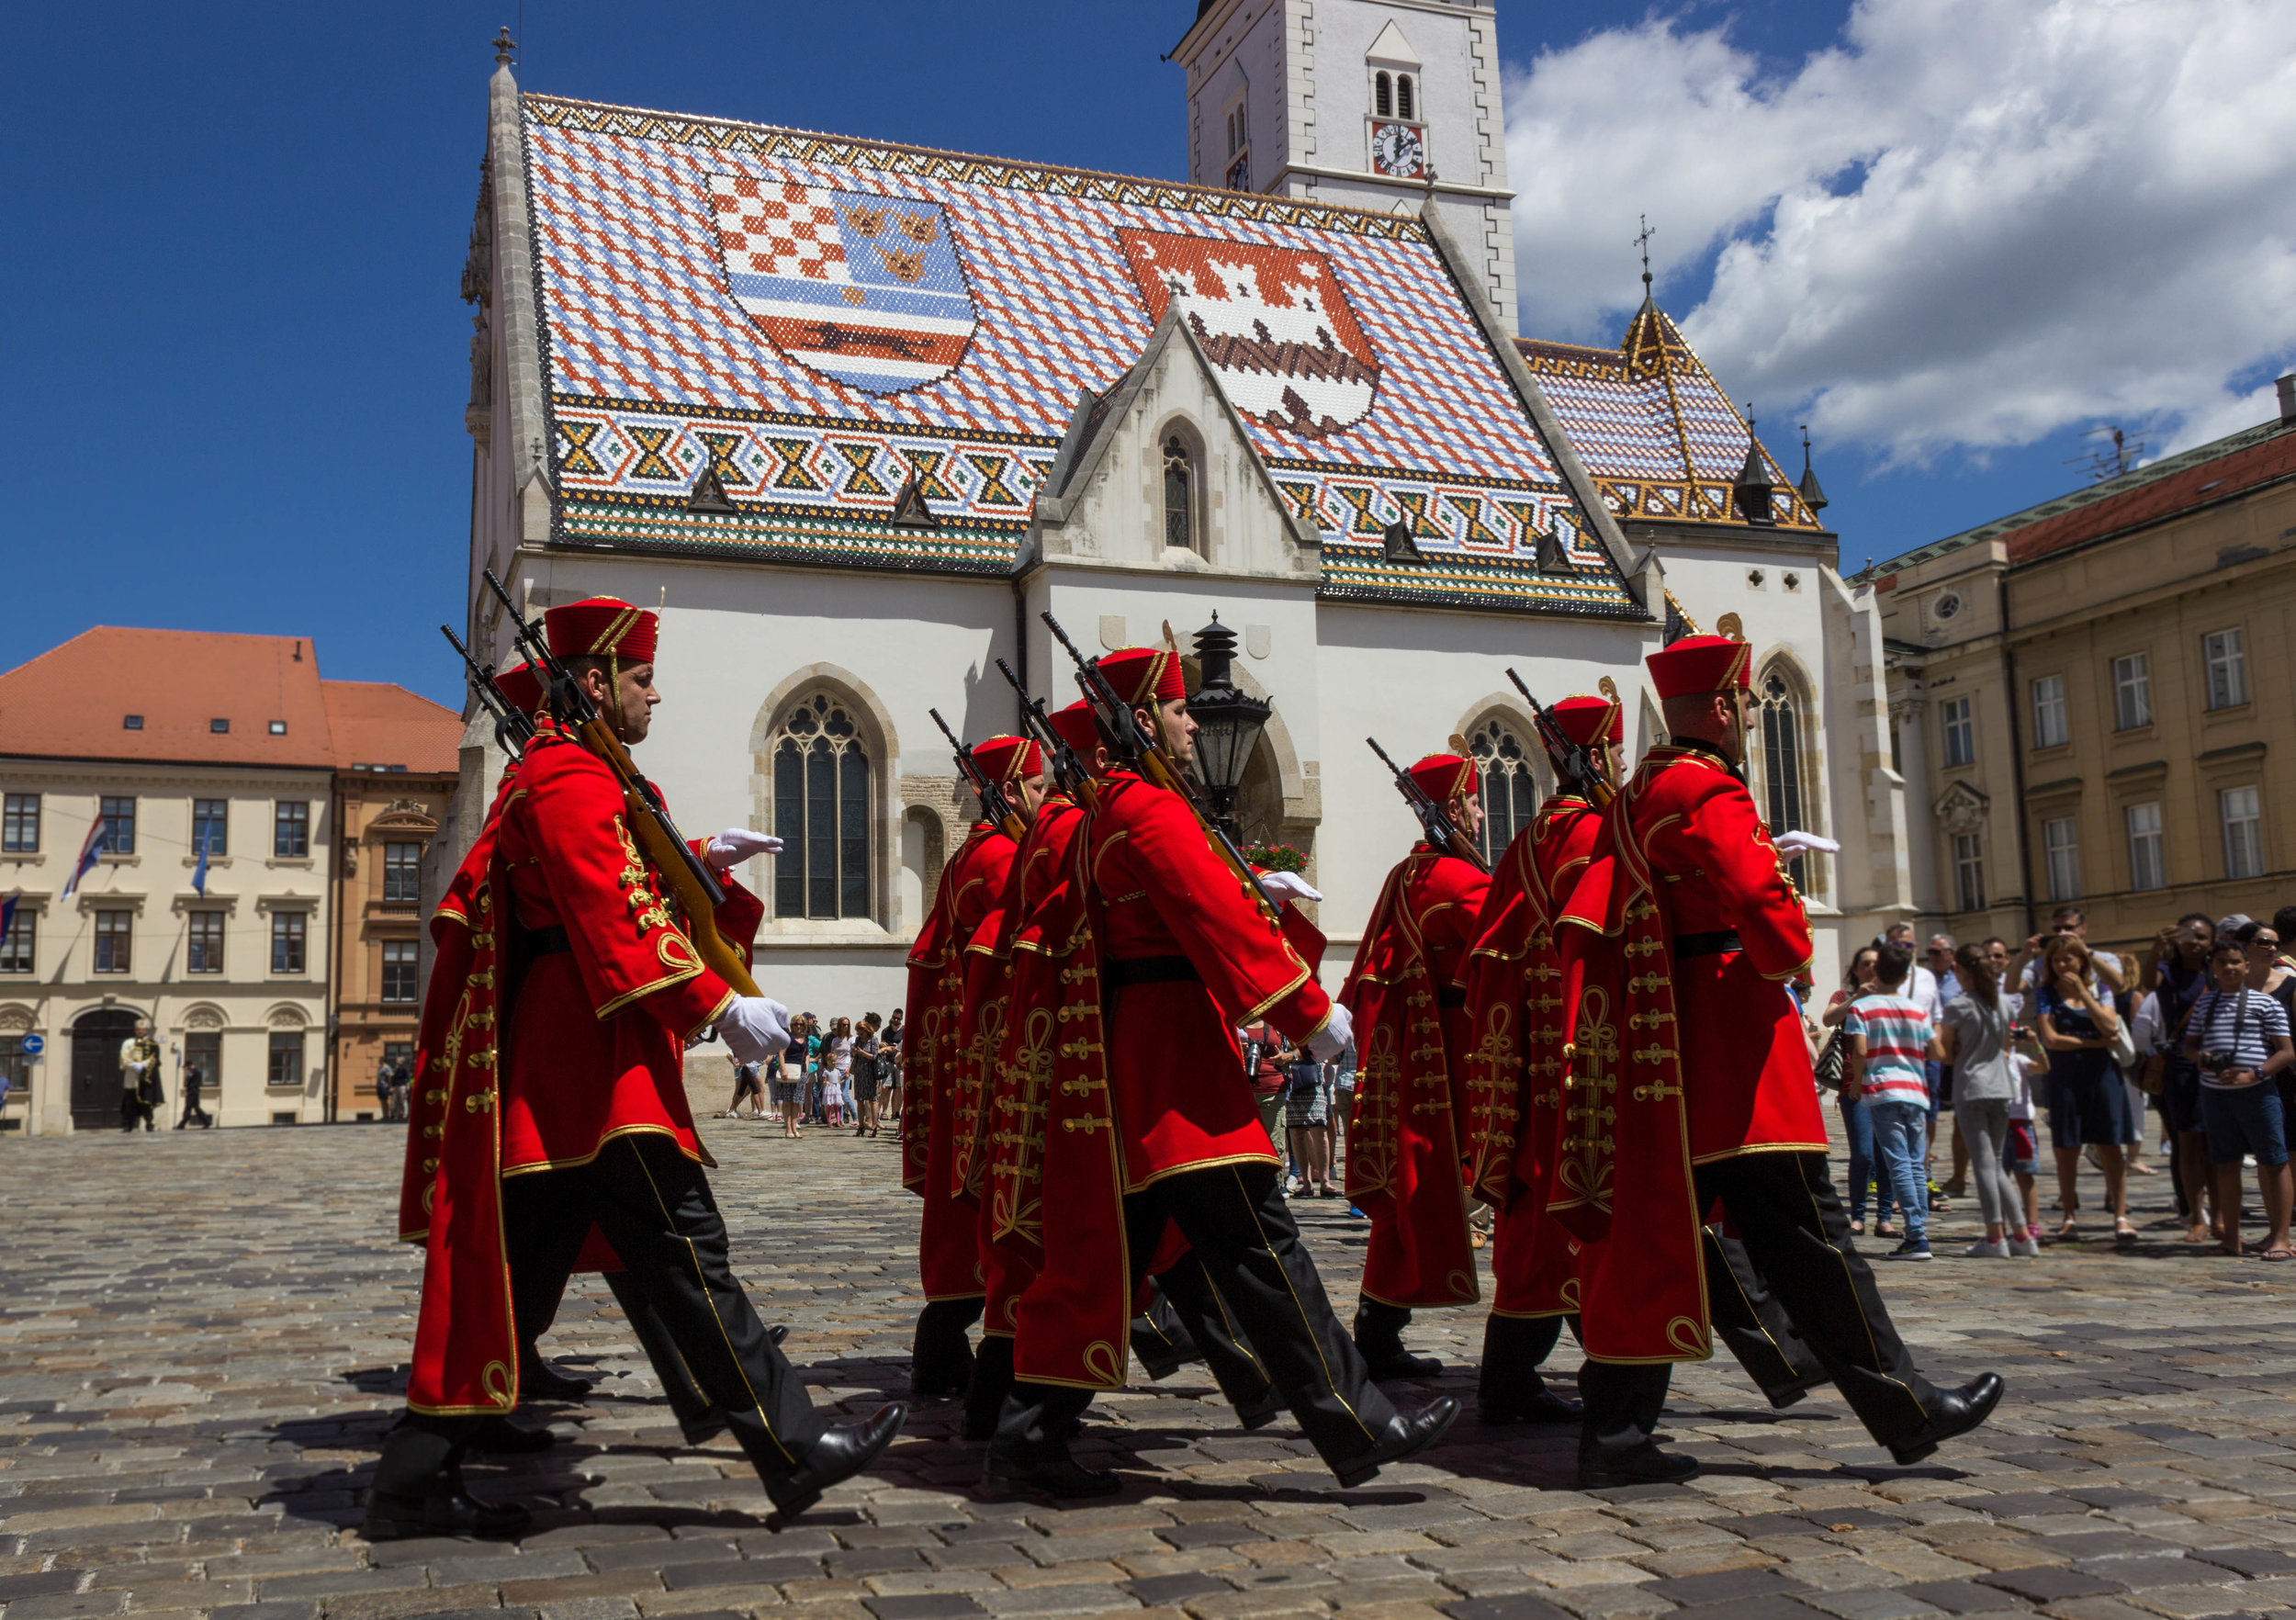 The changing of the guards on Saturday and Sundays at noon at St. Marks Church